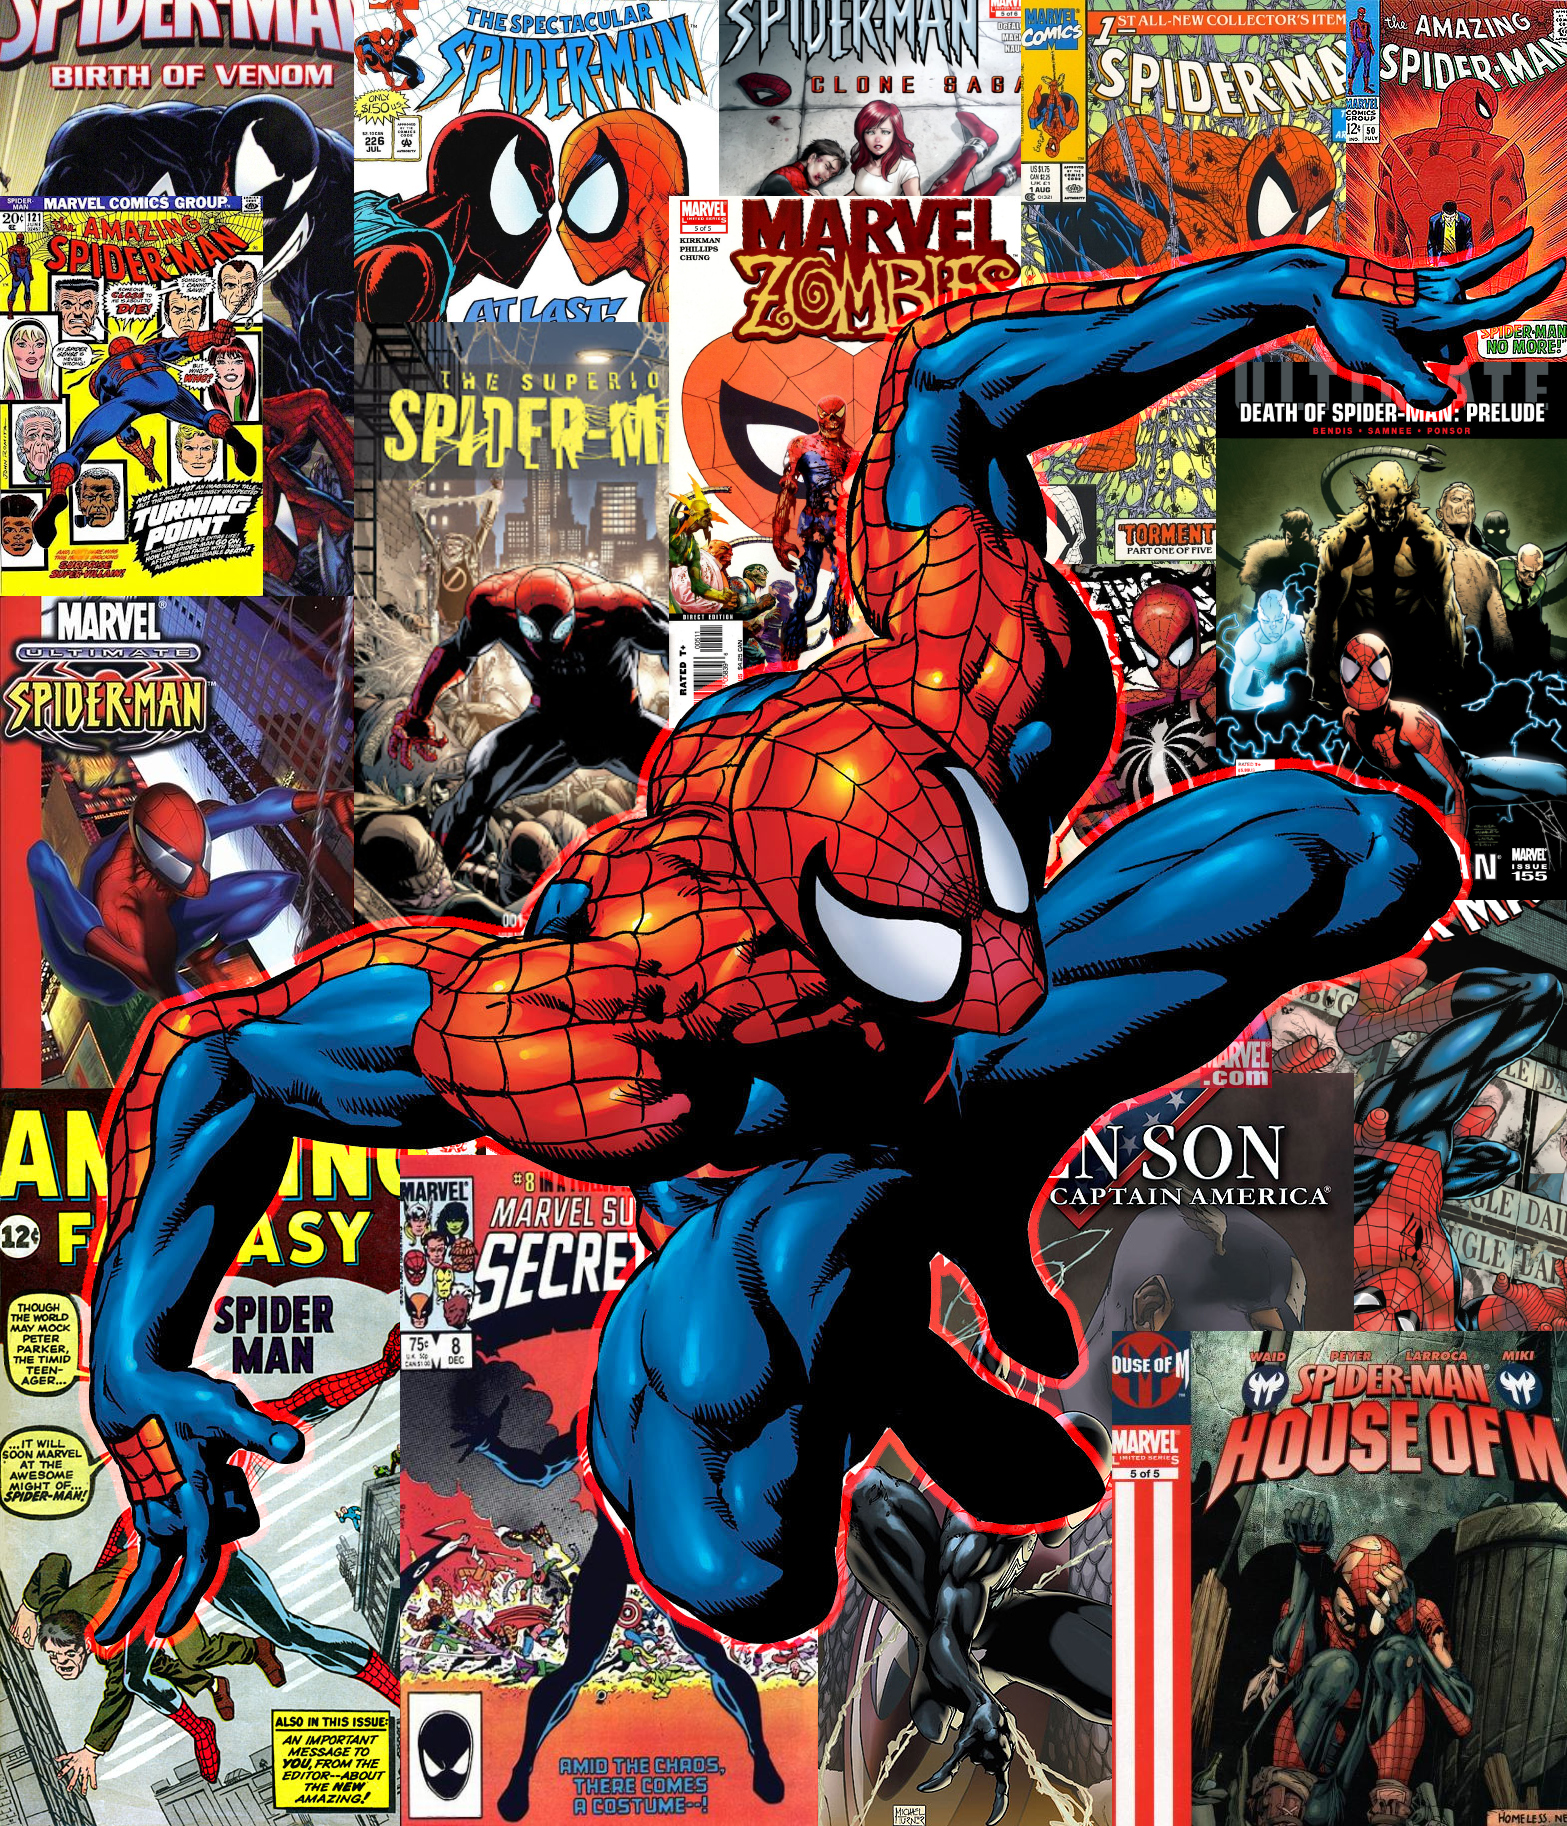 Spider-Man Comicbook Cover Collection Wallpaper by ...